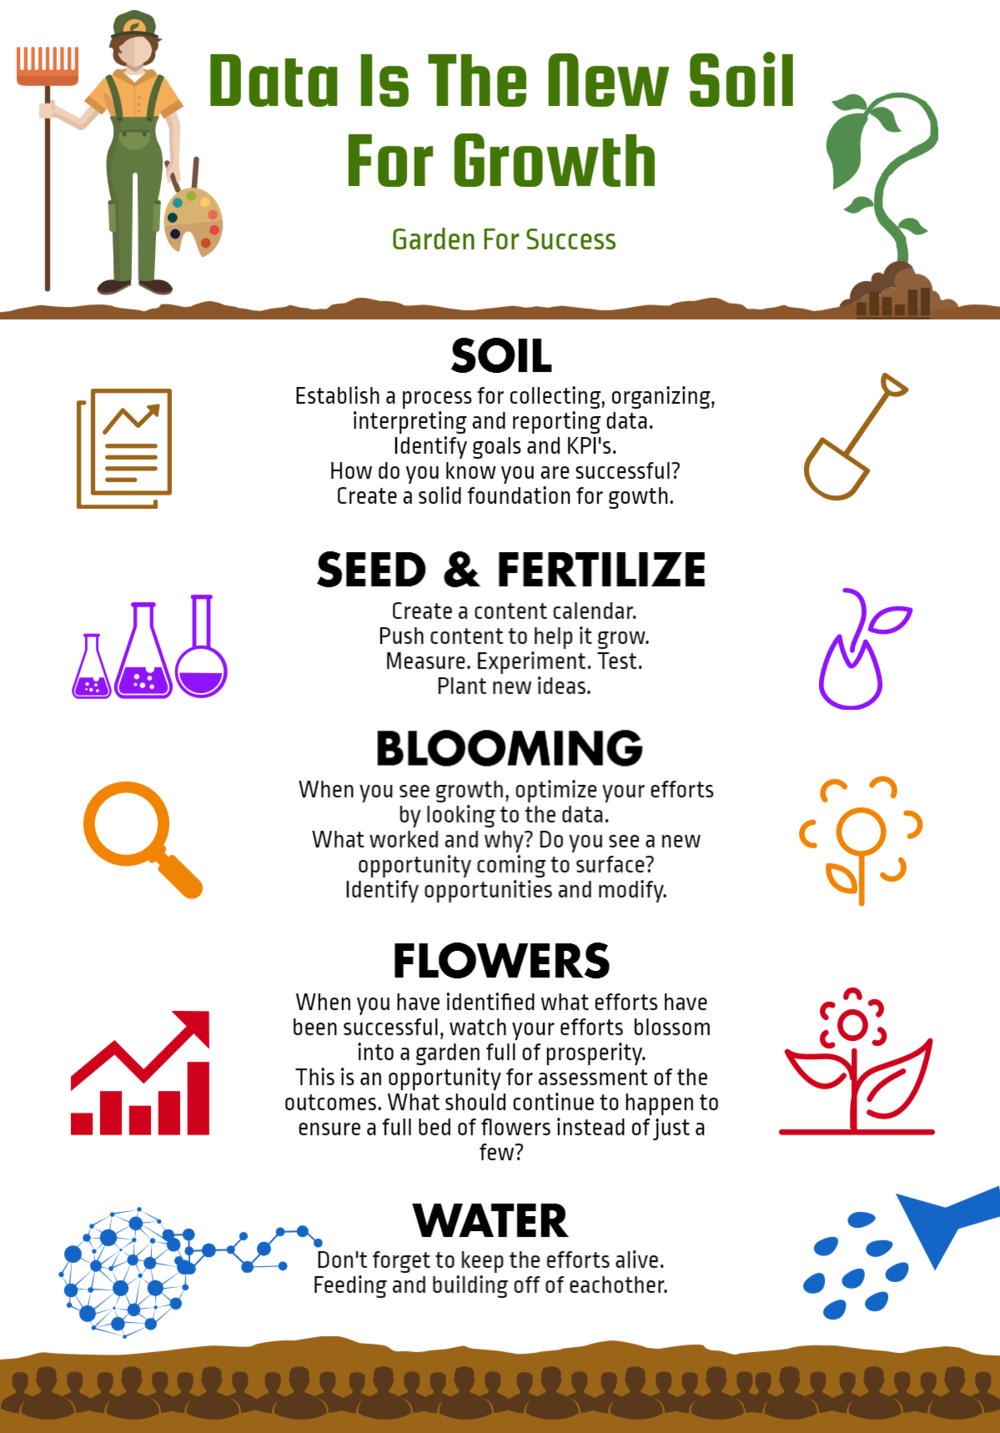 Data is the new soil for growth - Garden For Success - Brook Maier.png